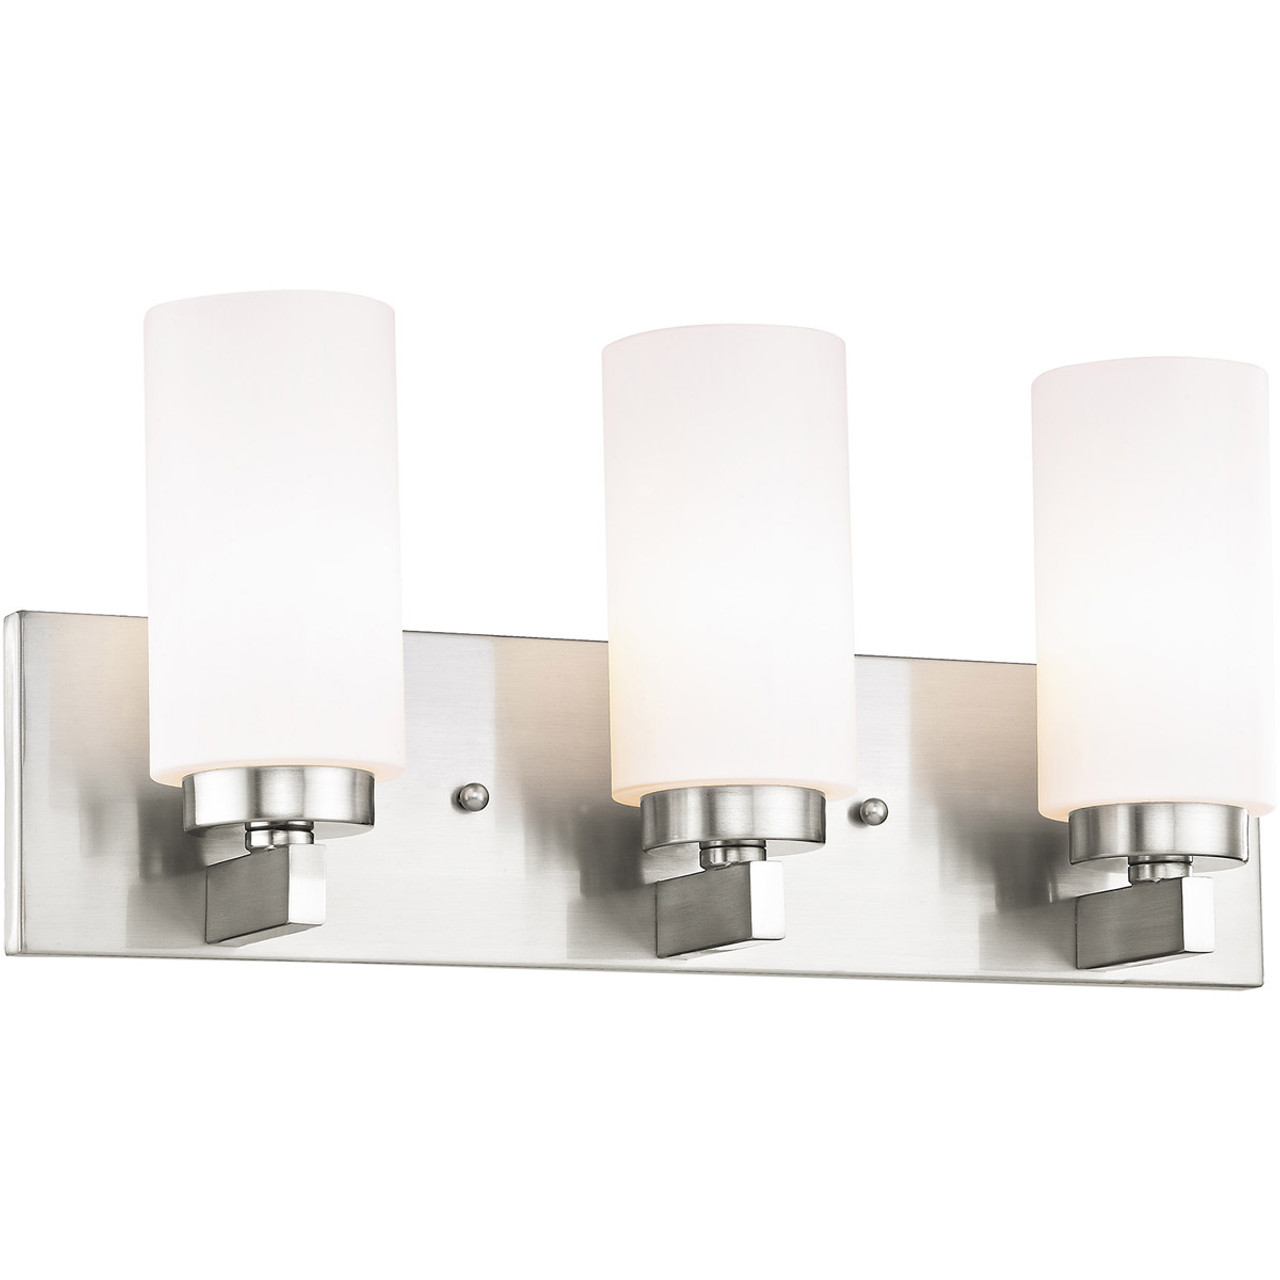 Livex Lighting West Lake Collection 3 Light Brushed Nickel Bath In 16373 91